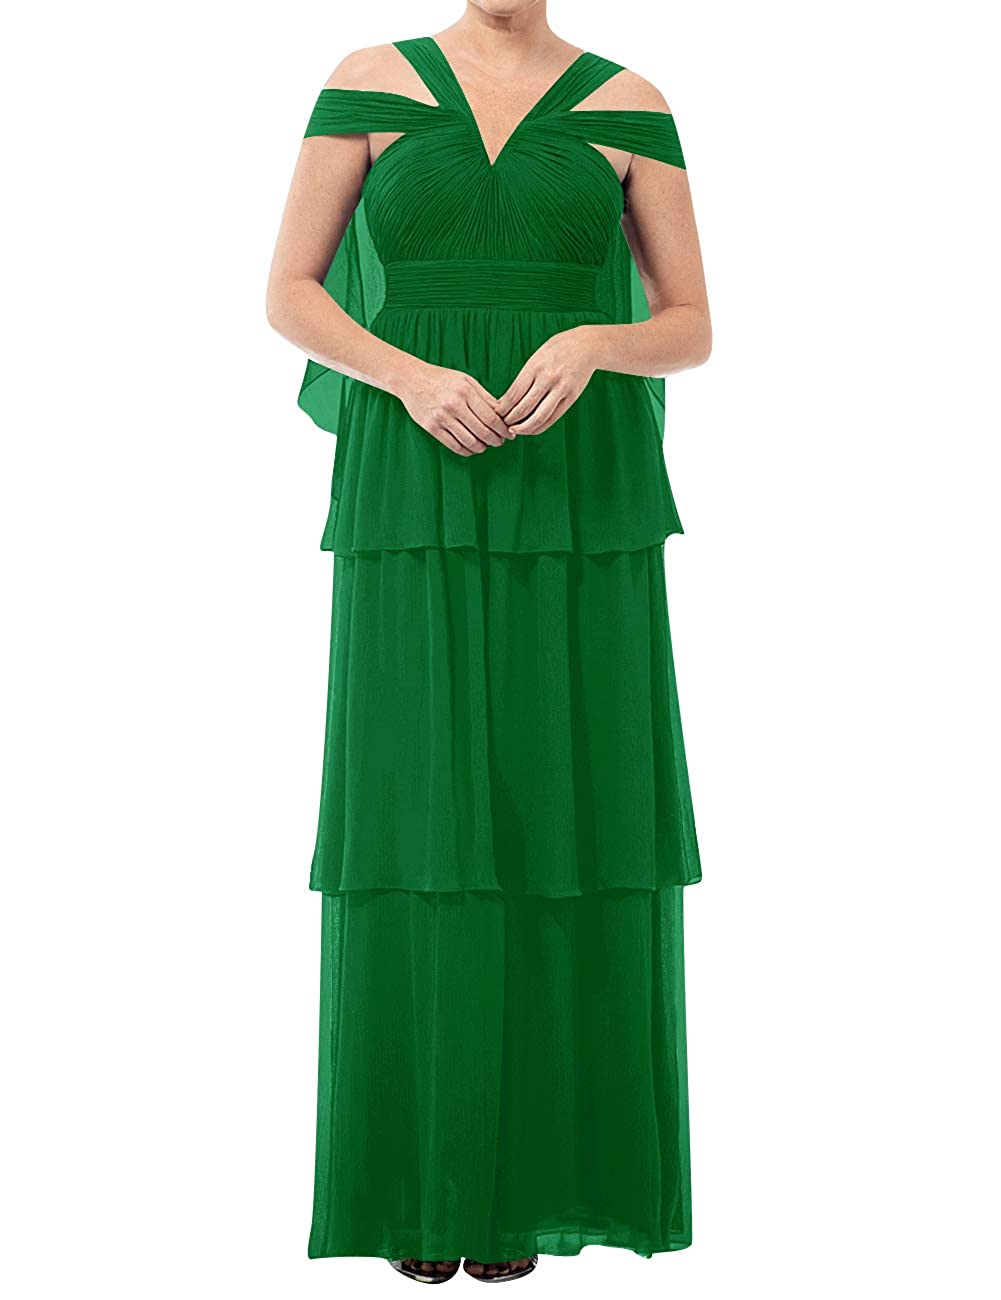 Green Mother of The Bride Dresses VNeck Long Mother of Groom Dress Plus Size Evening Gowns